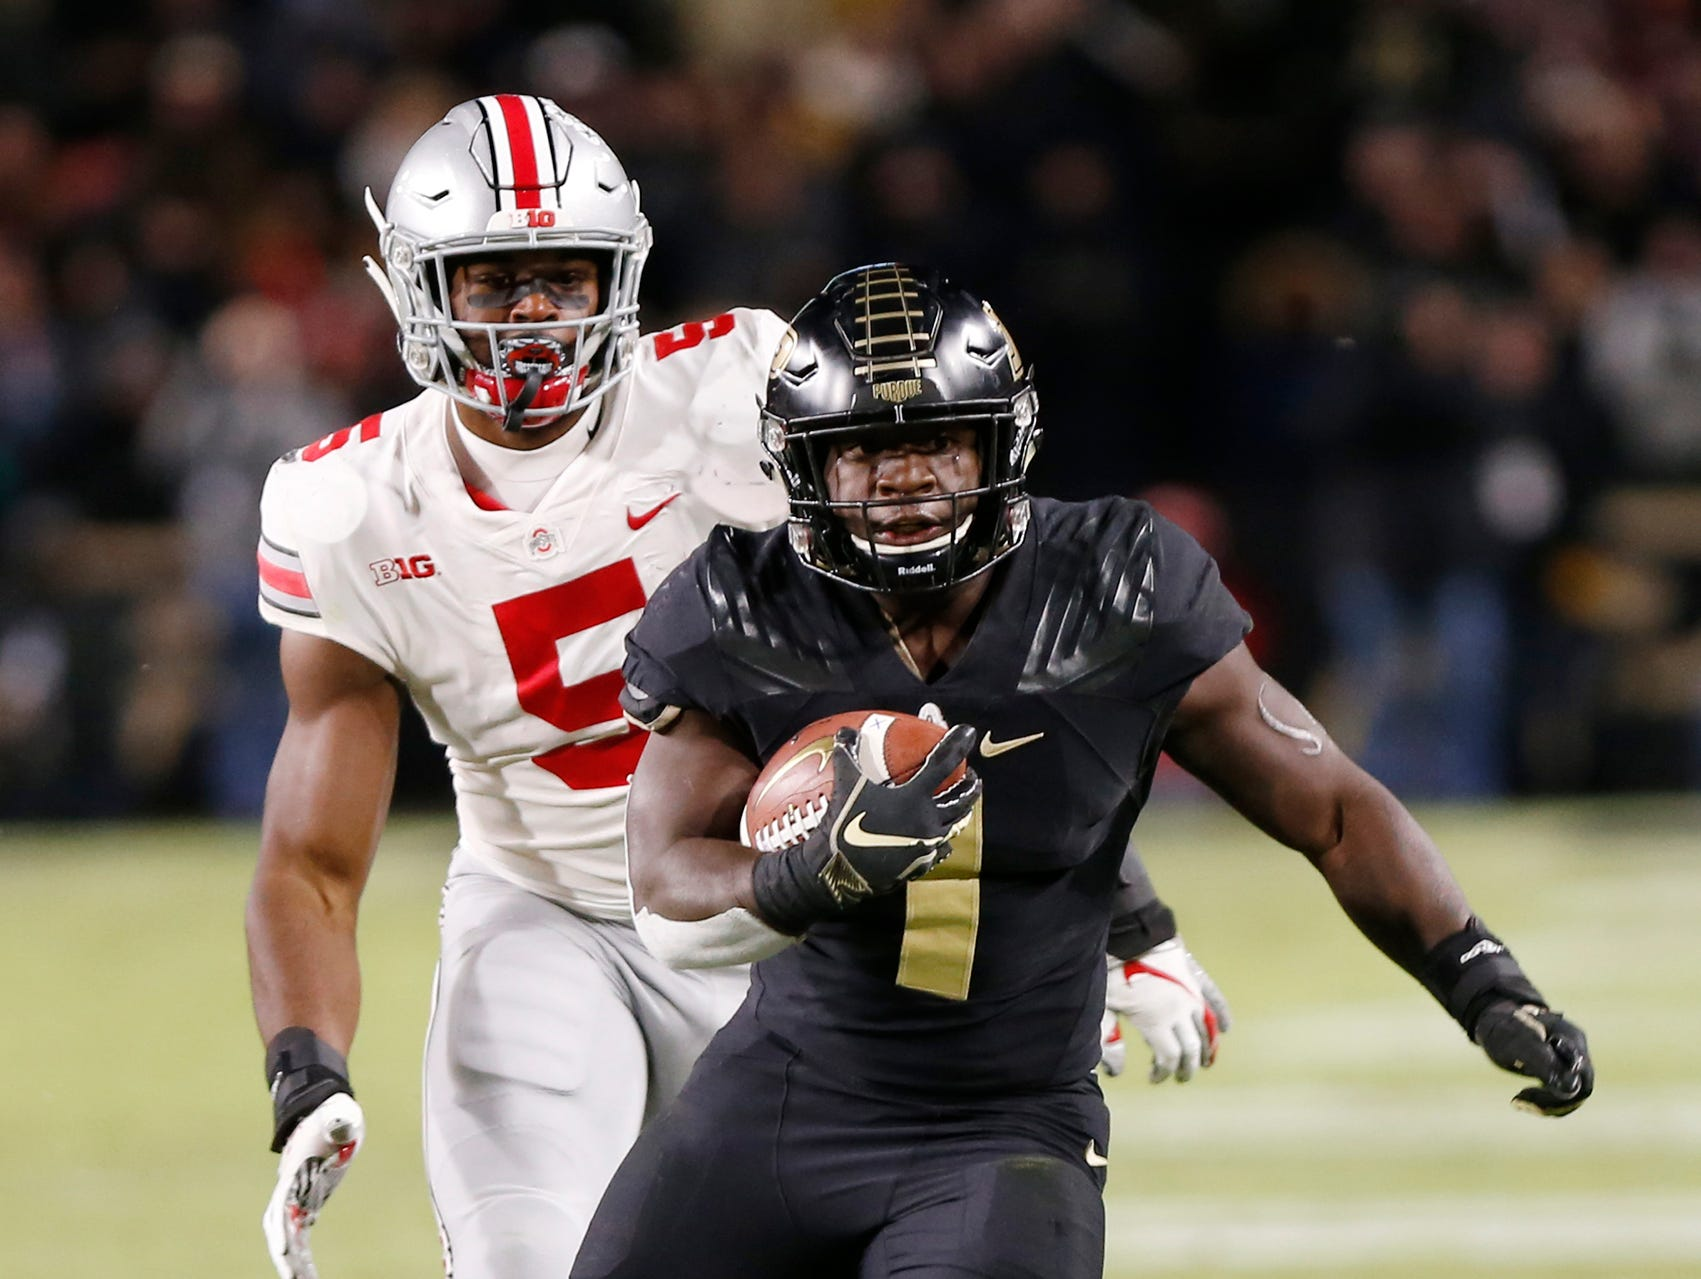 D. J. Knox of Purdue with a first half carry against Ohio State Saturday, October 20, 2018, at Ross-Ade Stadium. Purdue upset No. 2 ranked Ohio State 49-20.